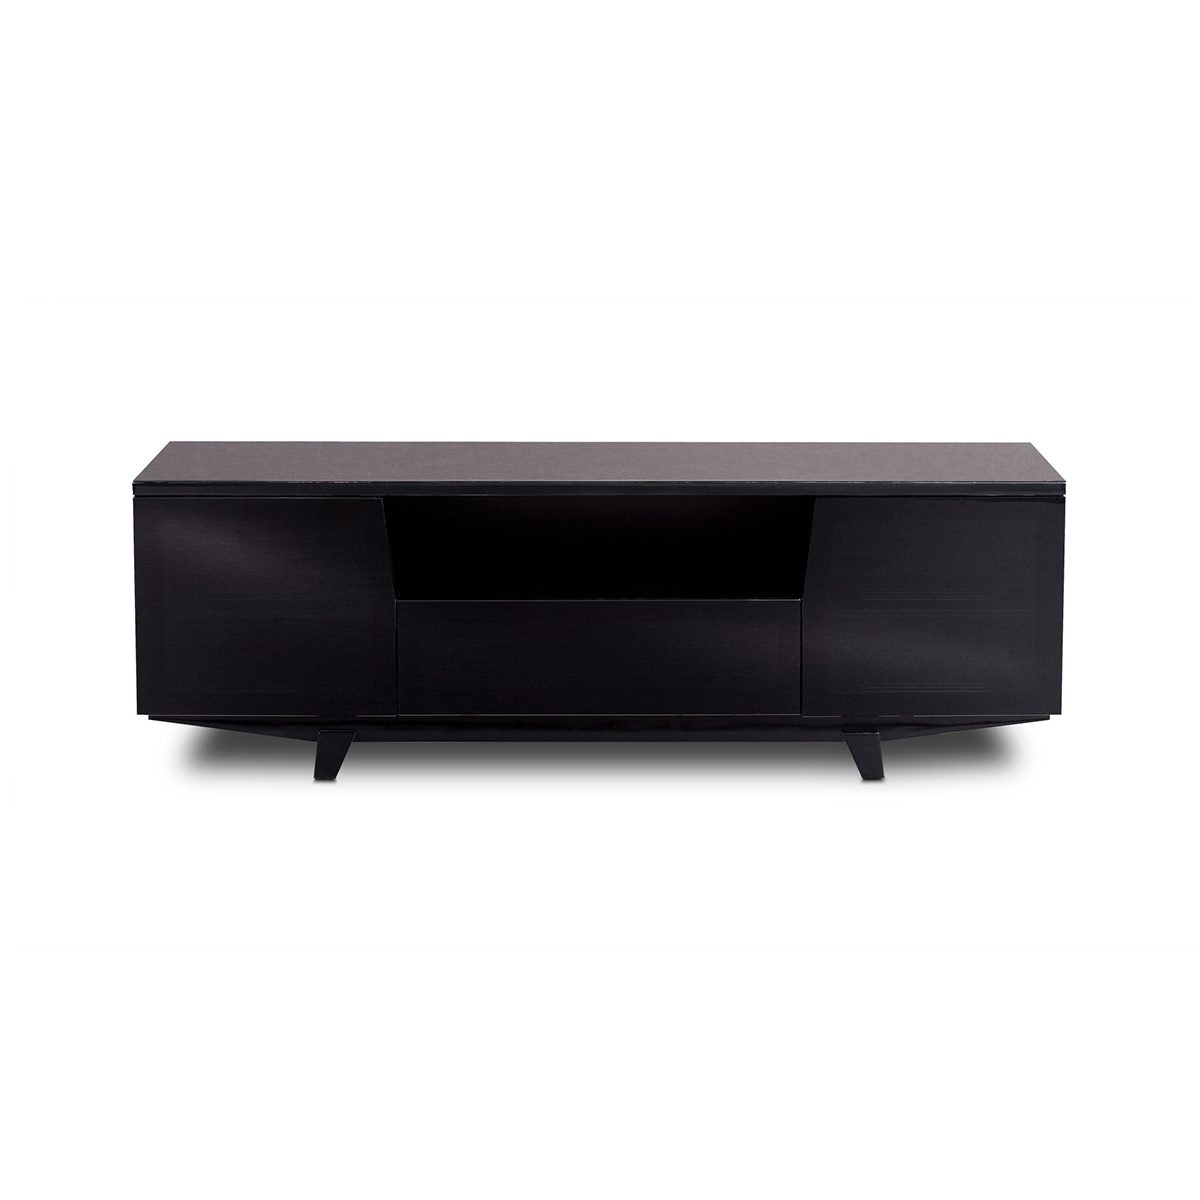 BDI Home Entertainment Marina 8729 2 Media Cabinet 8729 2 B At Hamilton  Sofa U0026 Leather Gallery